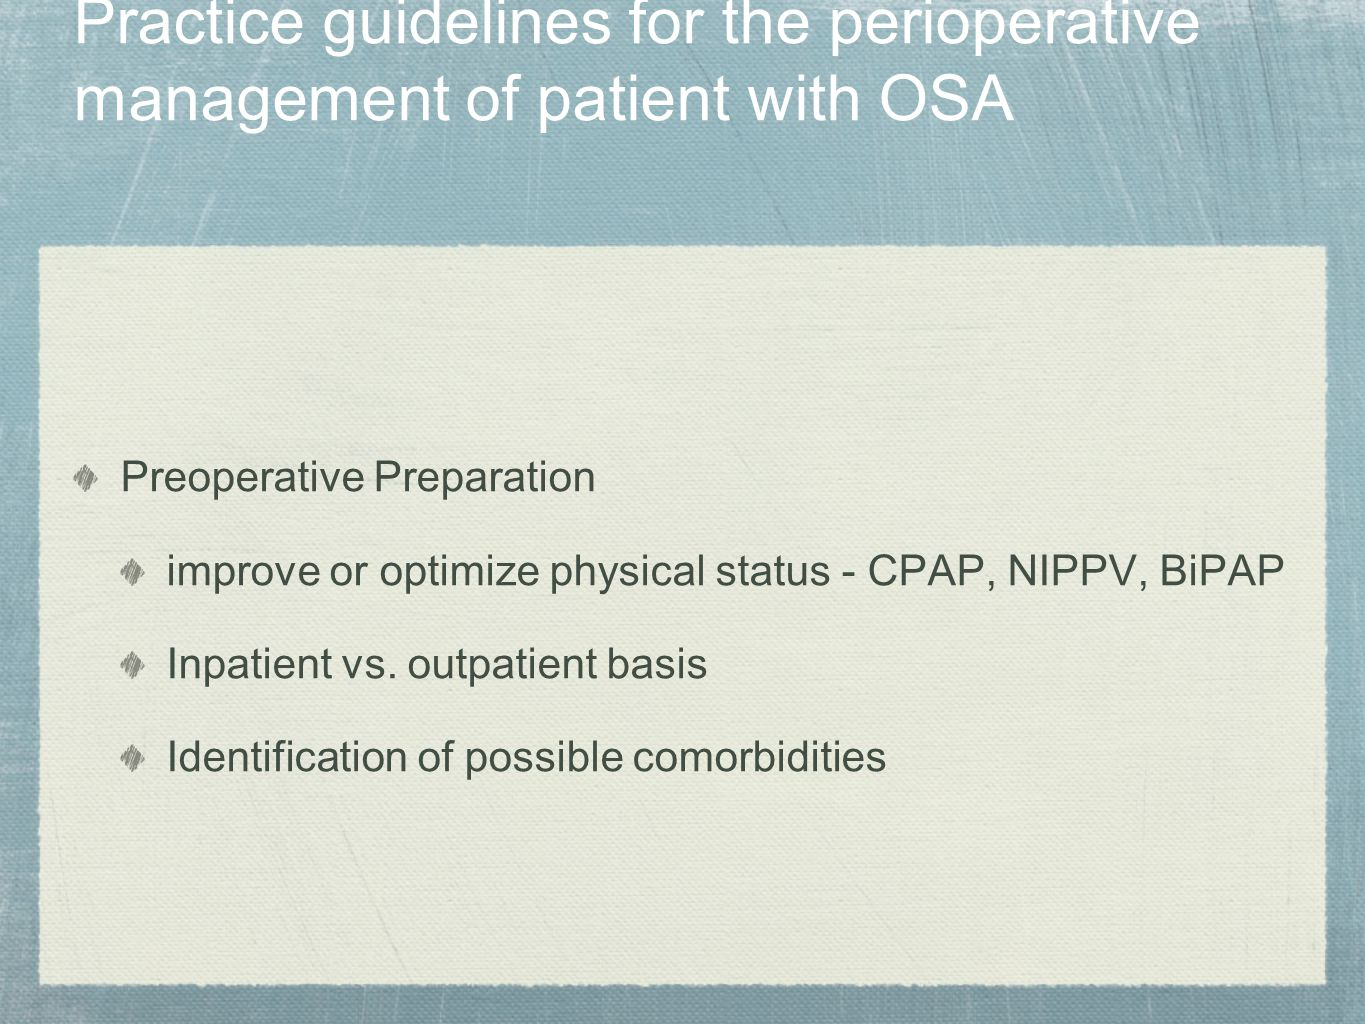 Practice guidelines for the perioperative management of patient with OSA